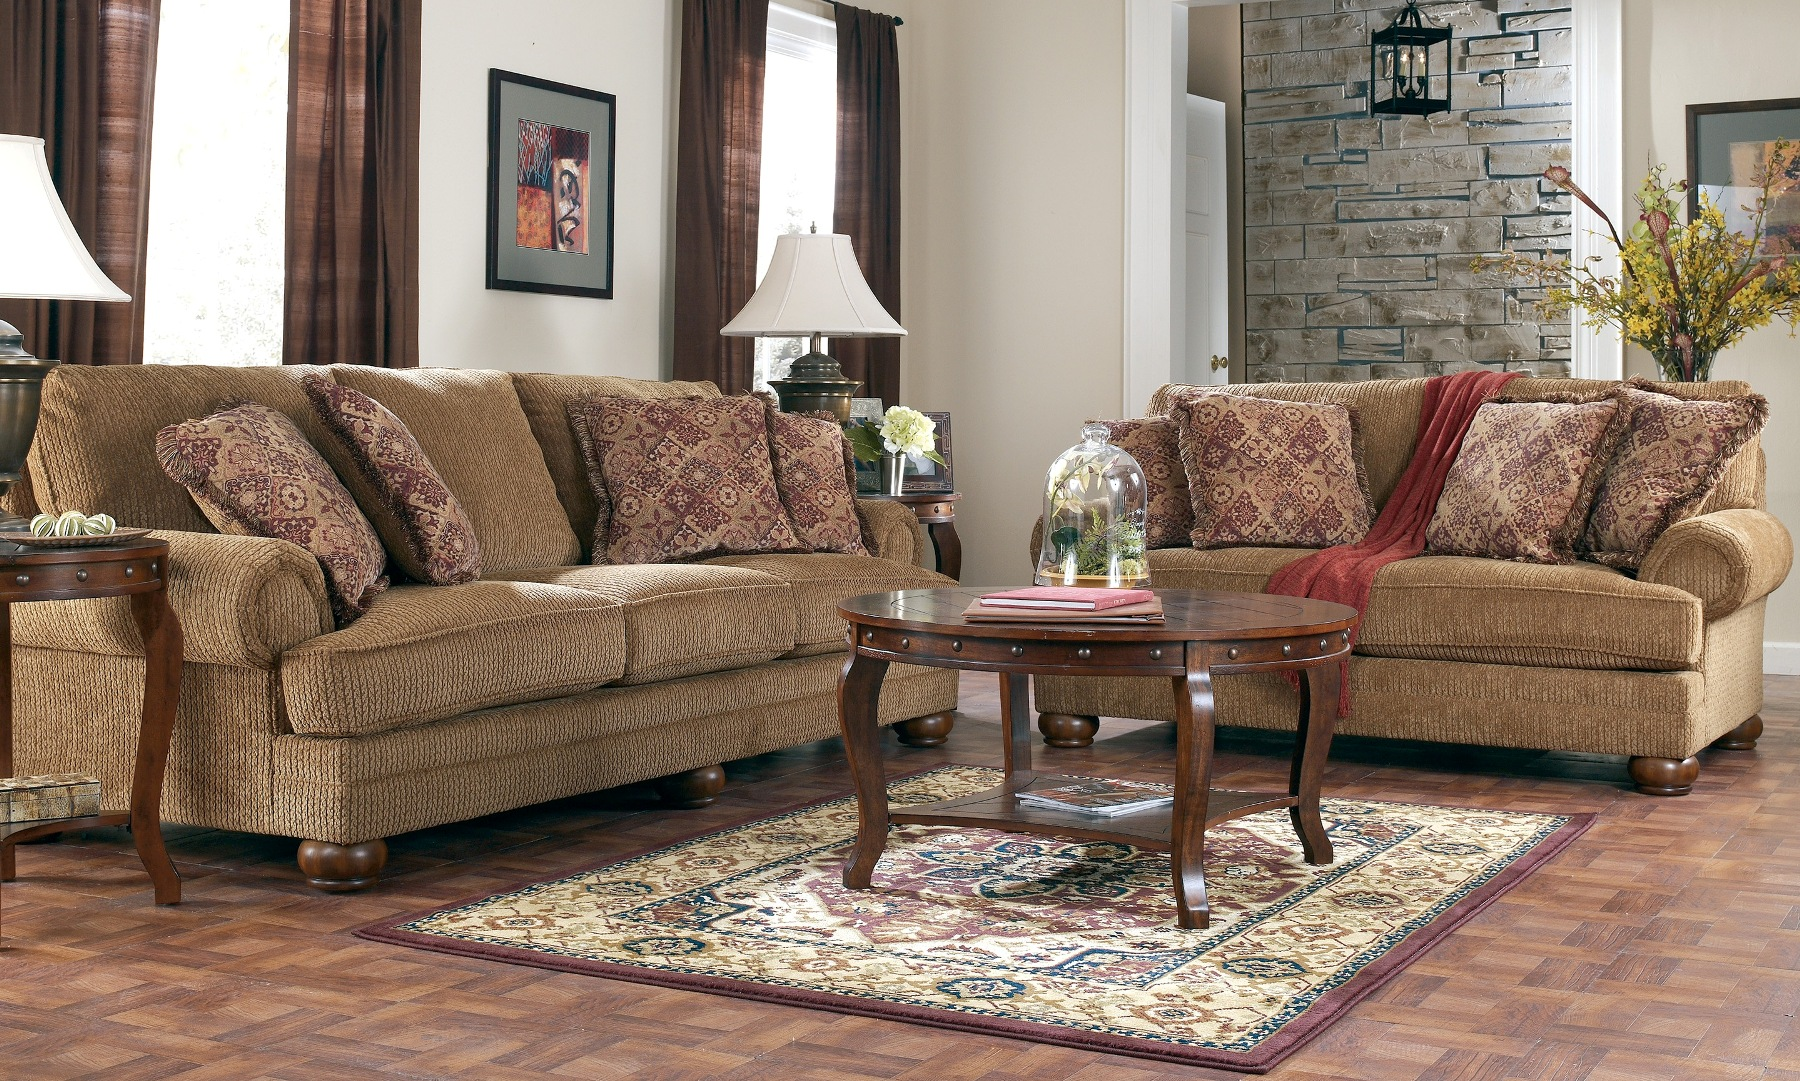 Best front room furnishings for living room ideas with front room furnishings outlet